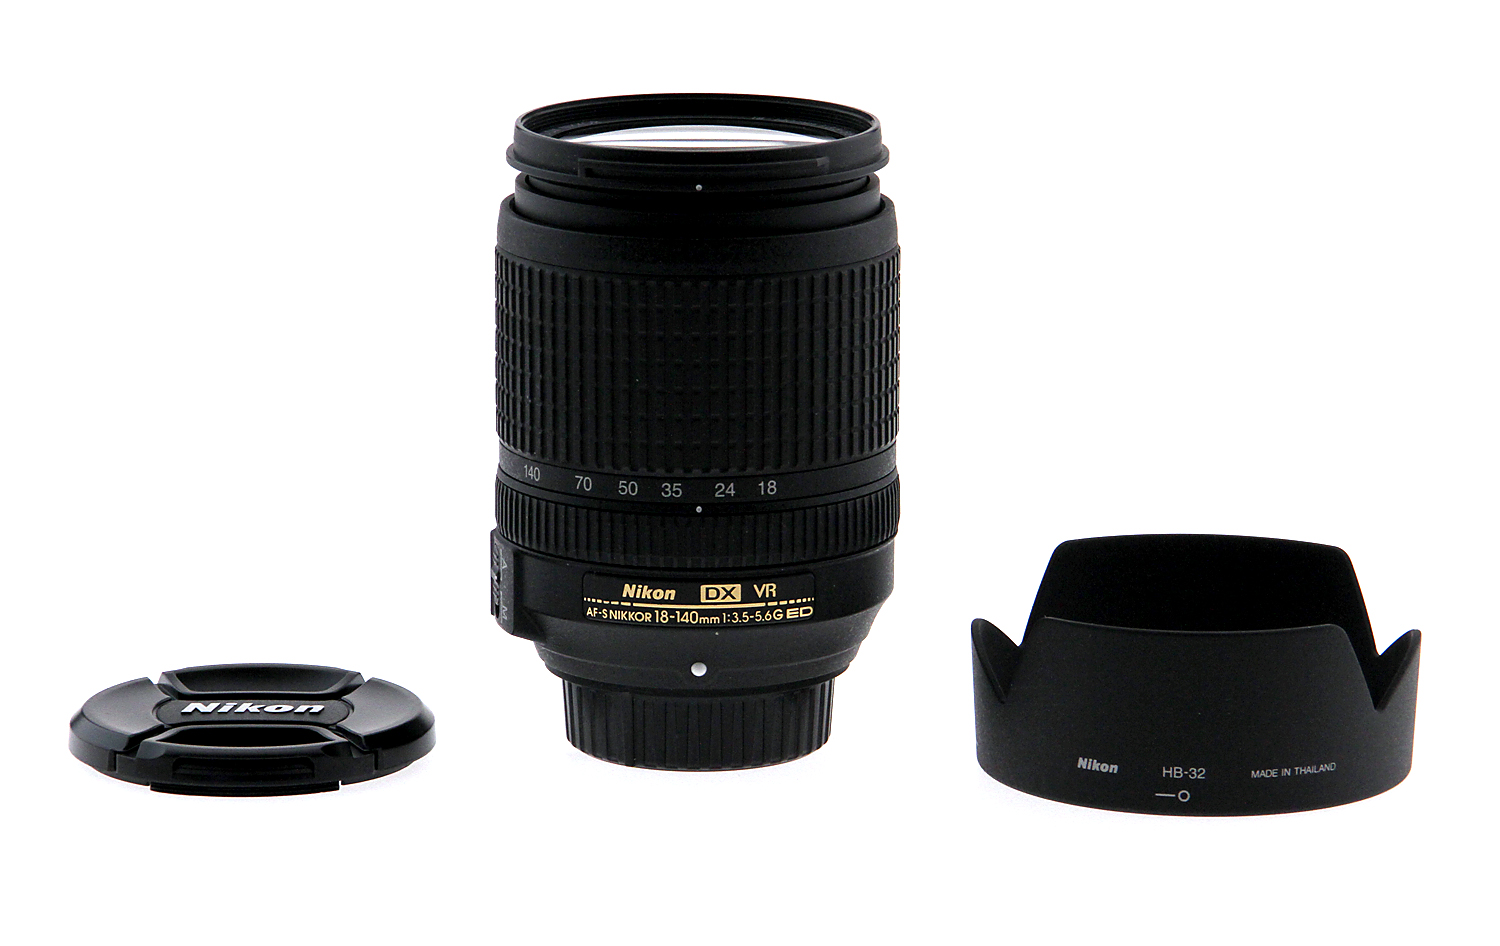 nikon af s dx nikkor 18 140mm f 3 5 5 6g ed vr lens open box 18208022137 ebay. Black Bedroom Furniture Sets. Home Design Ideas